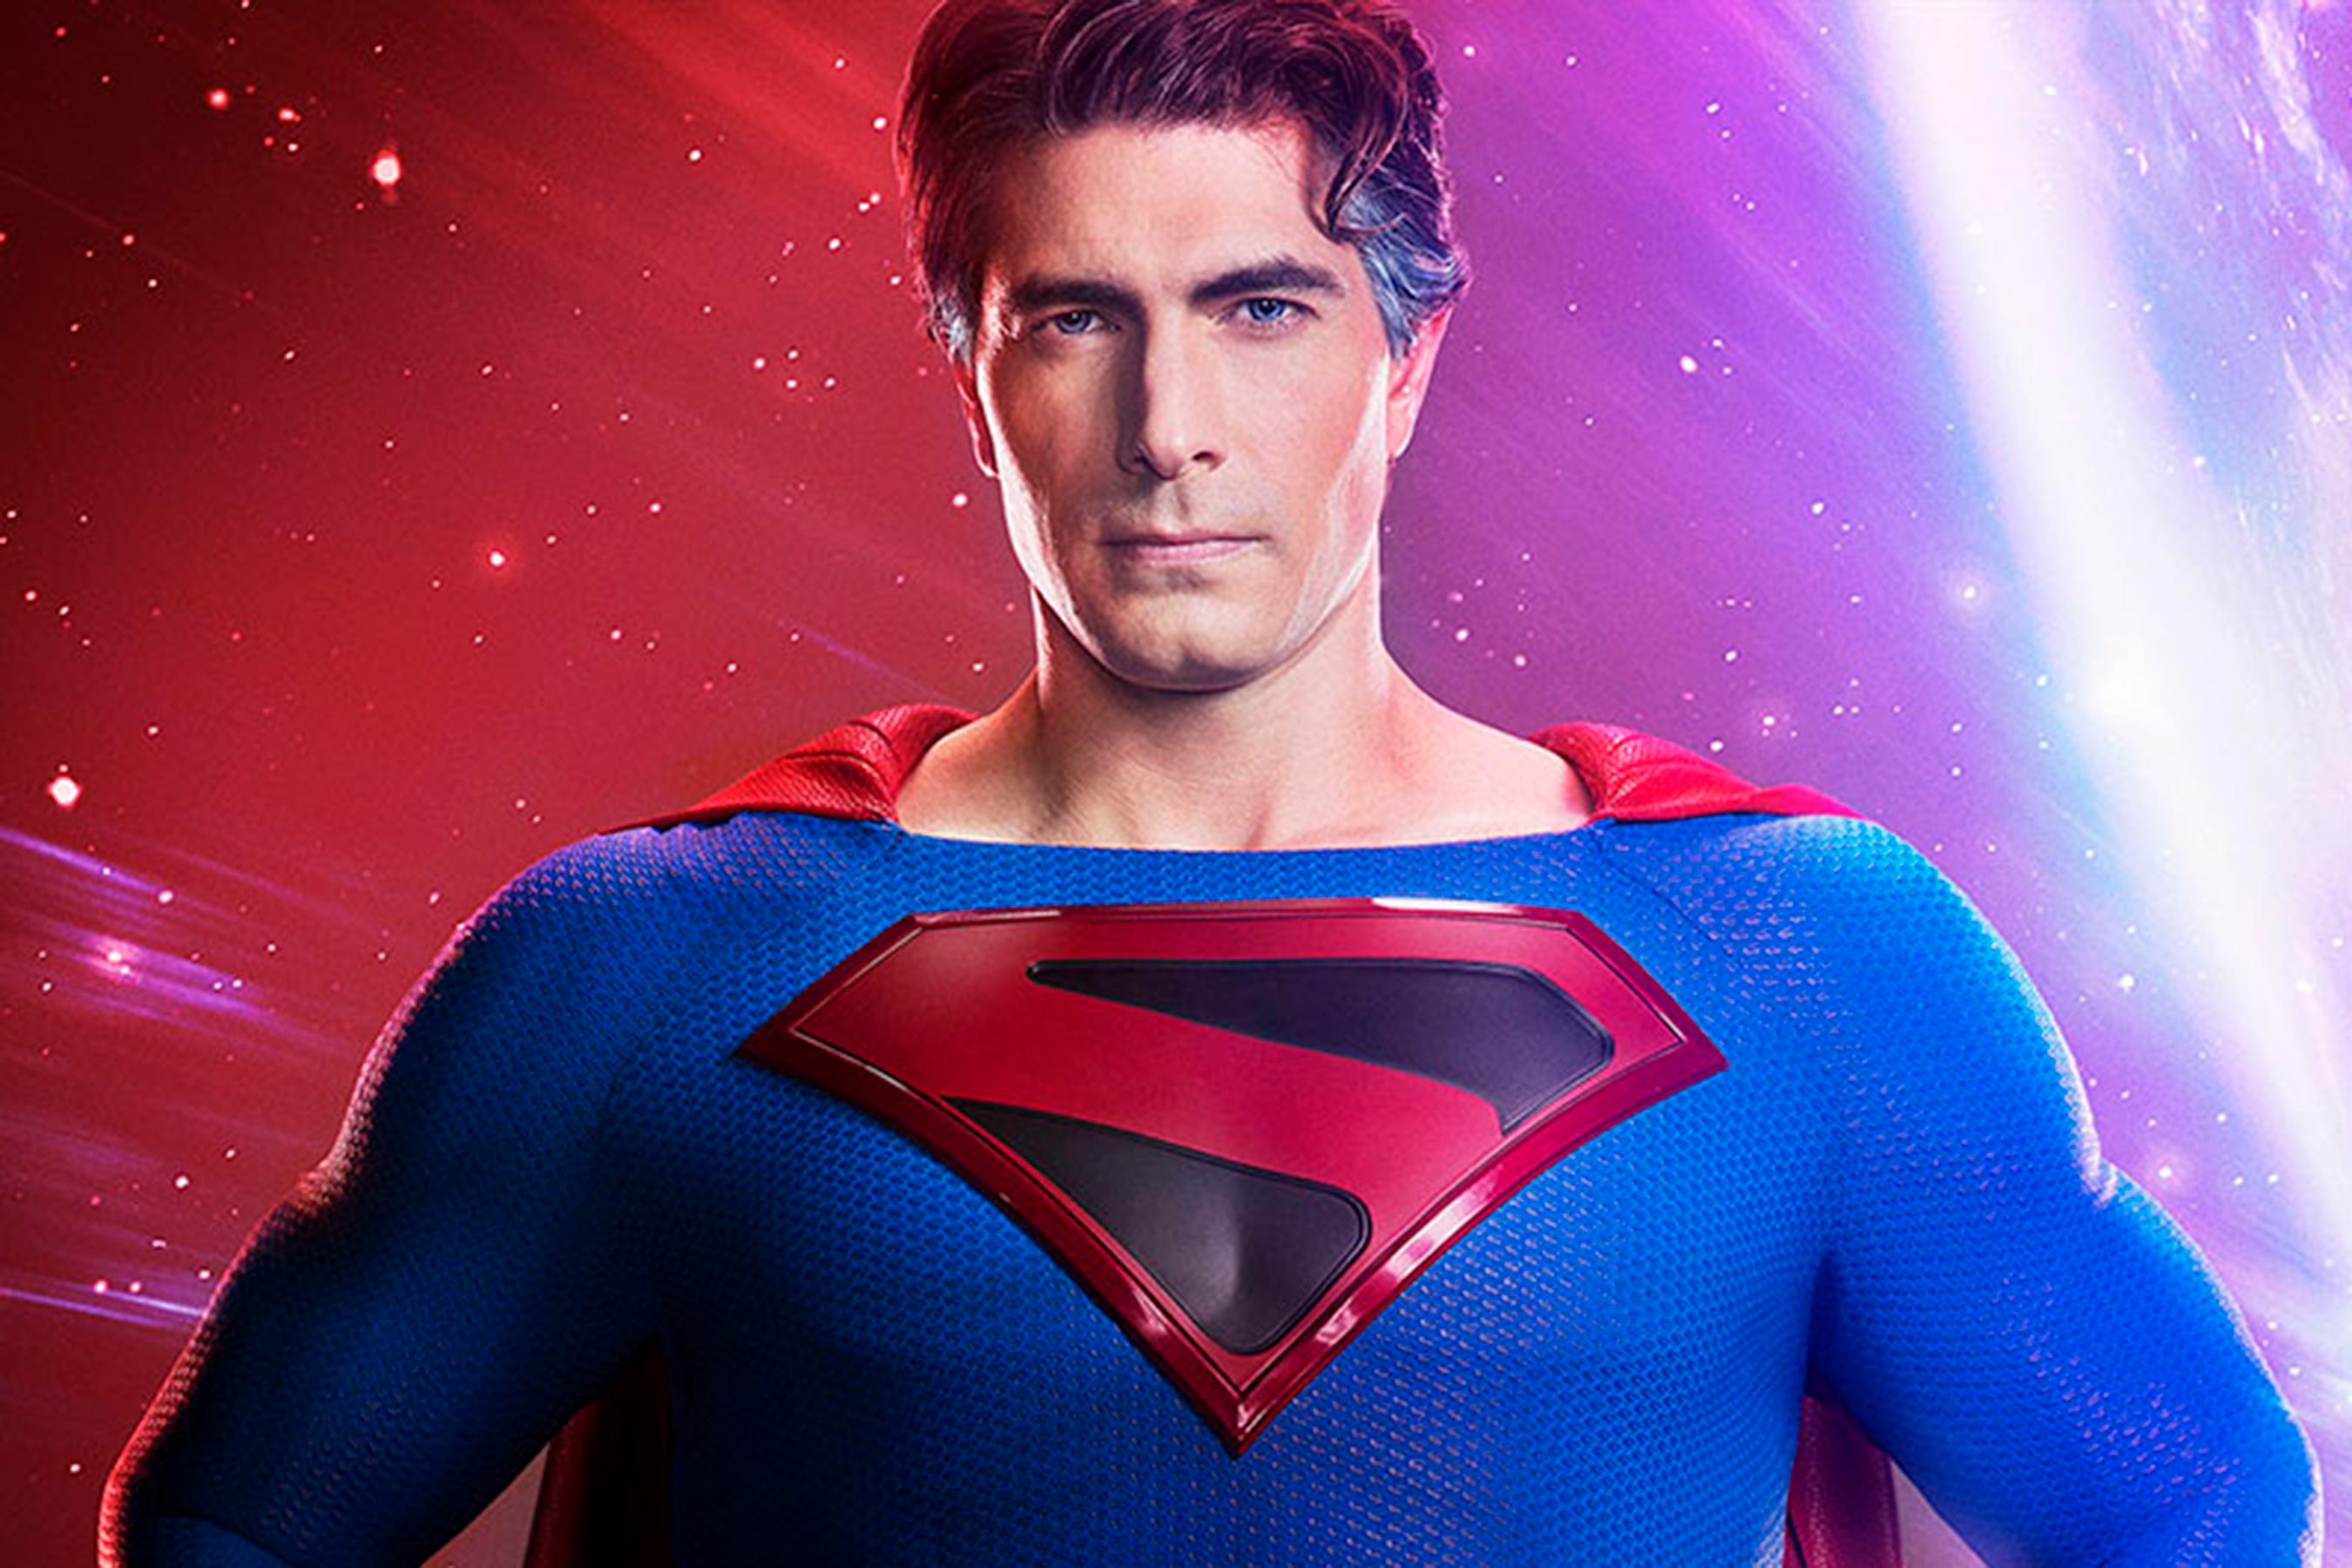 First Look at Brandon Routh as Superman in the CW's Crisis on Infinite Earths!